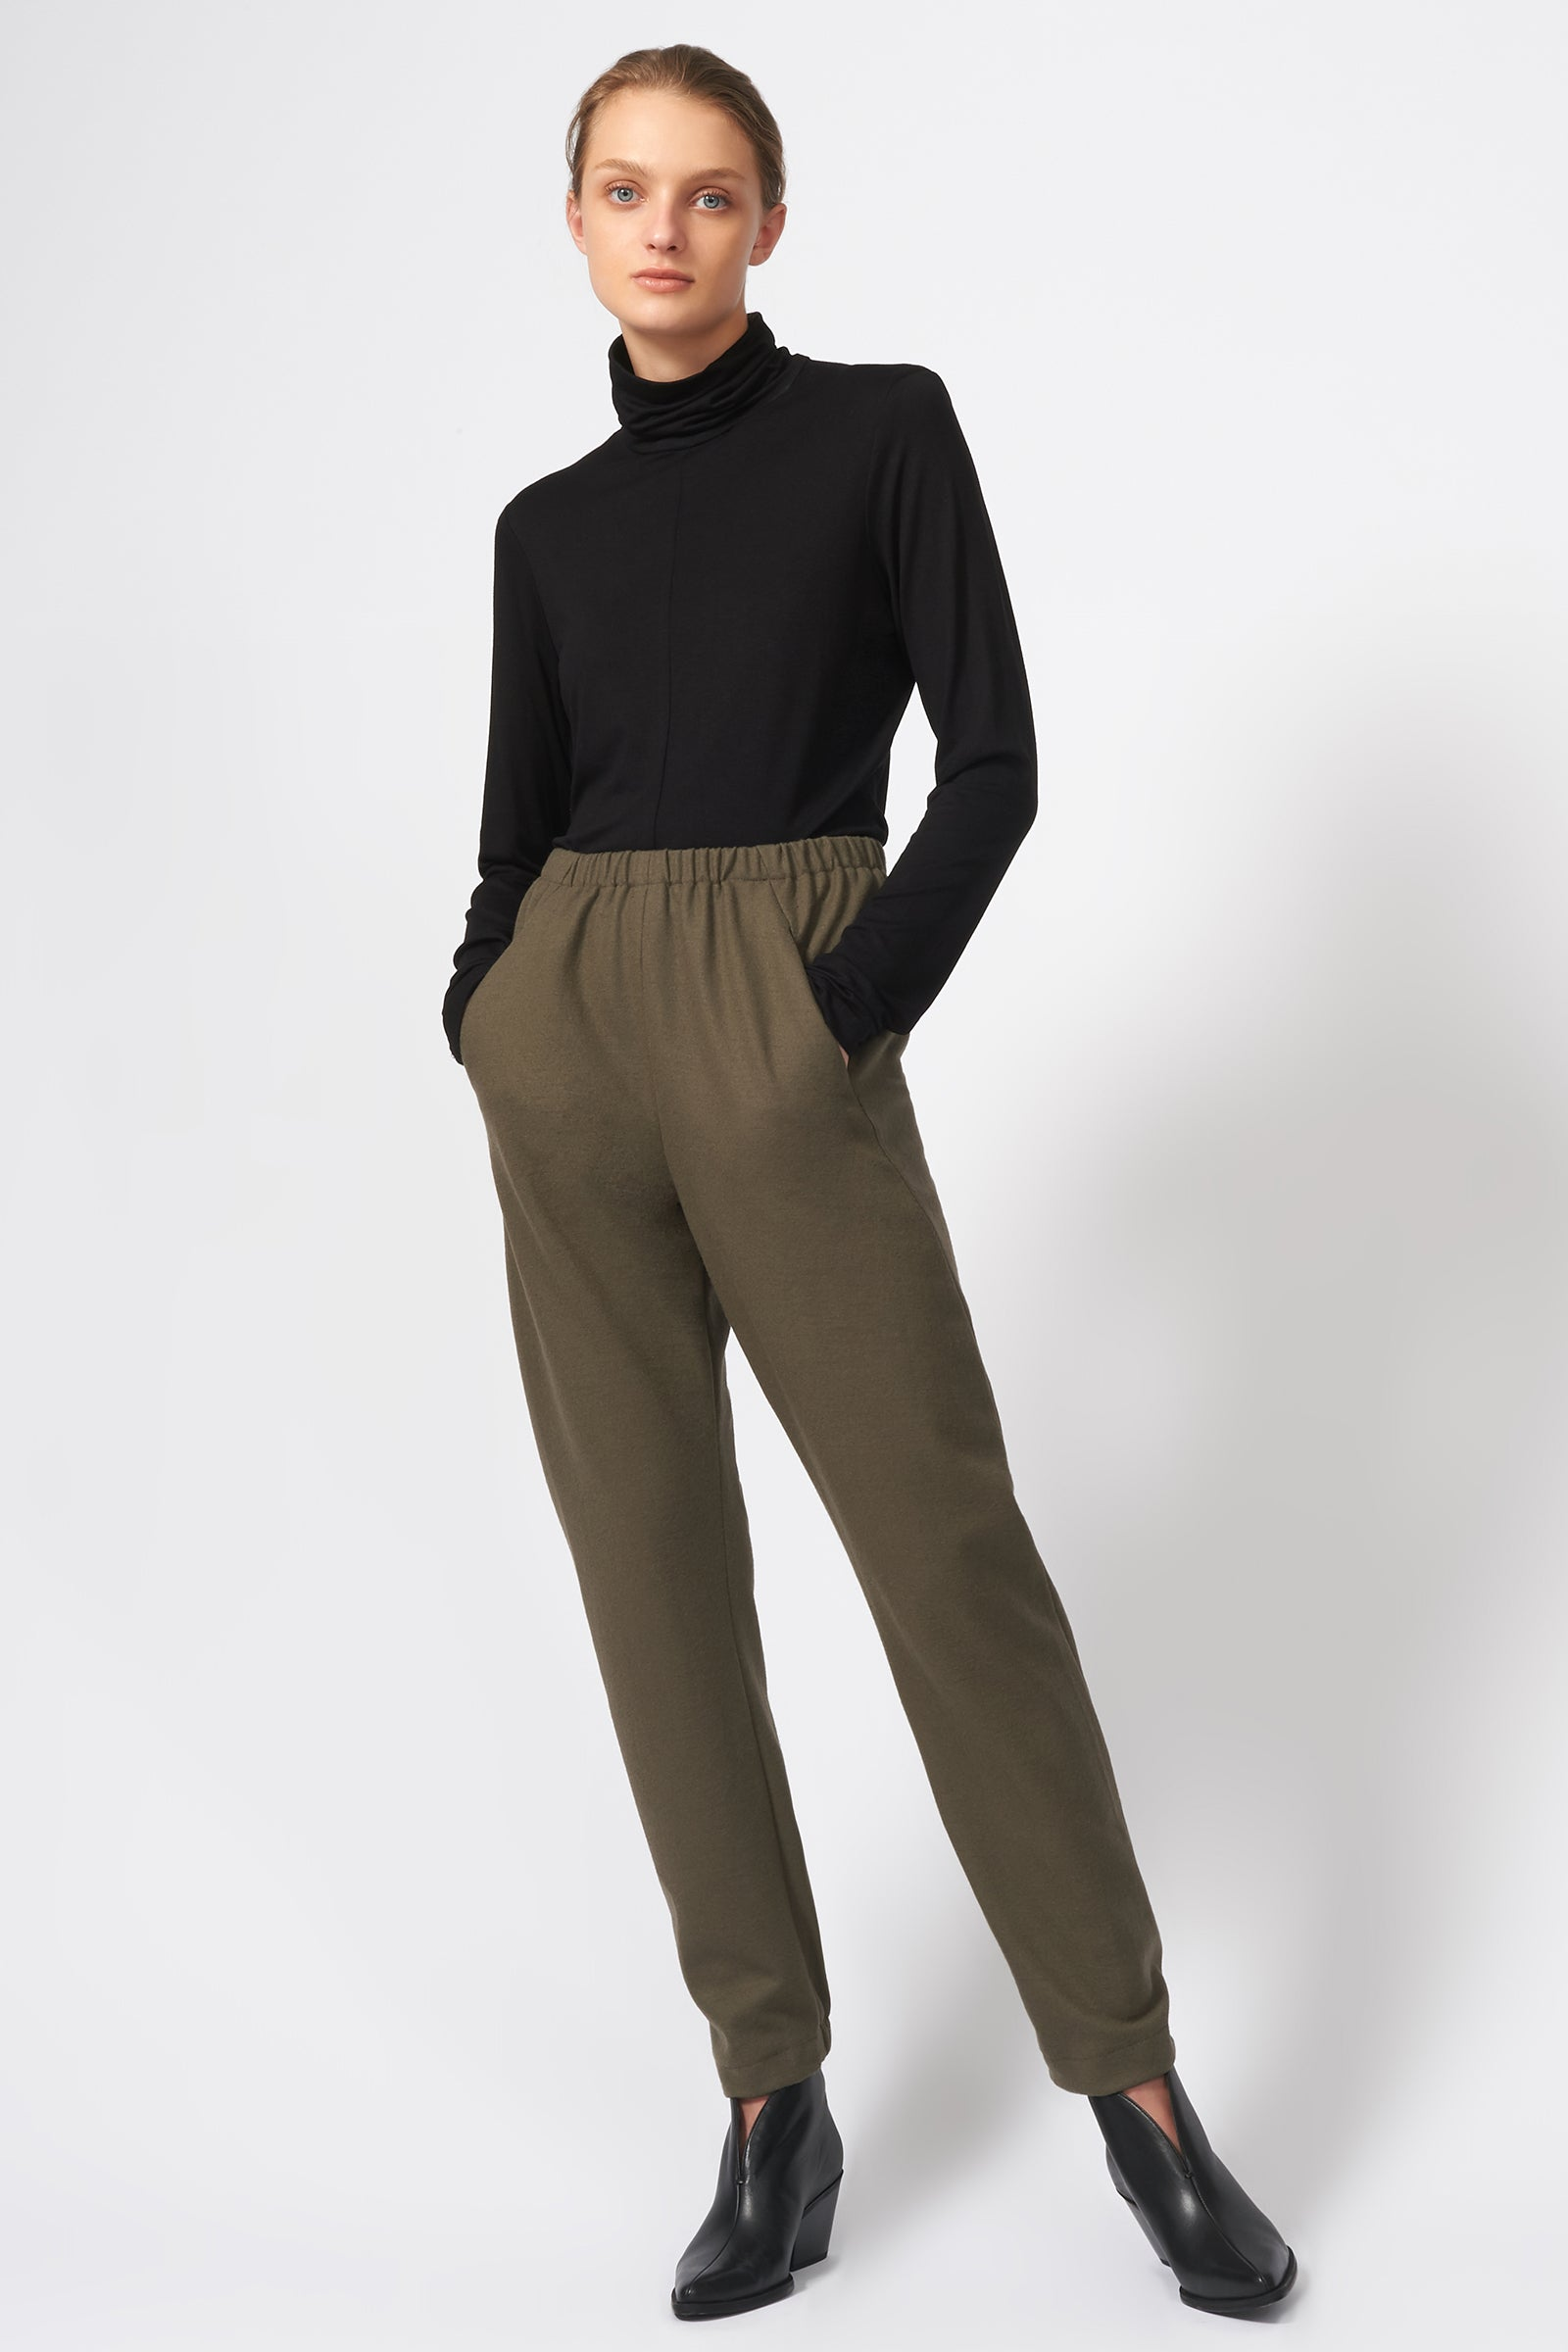 Kal Rieman Felted Jersey Angle Seam Jogger in Moss on Model Full Front View